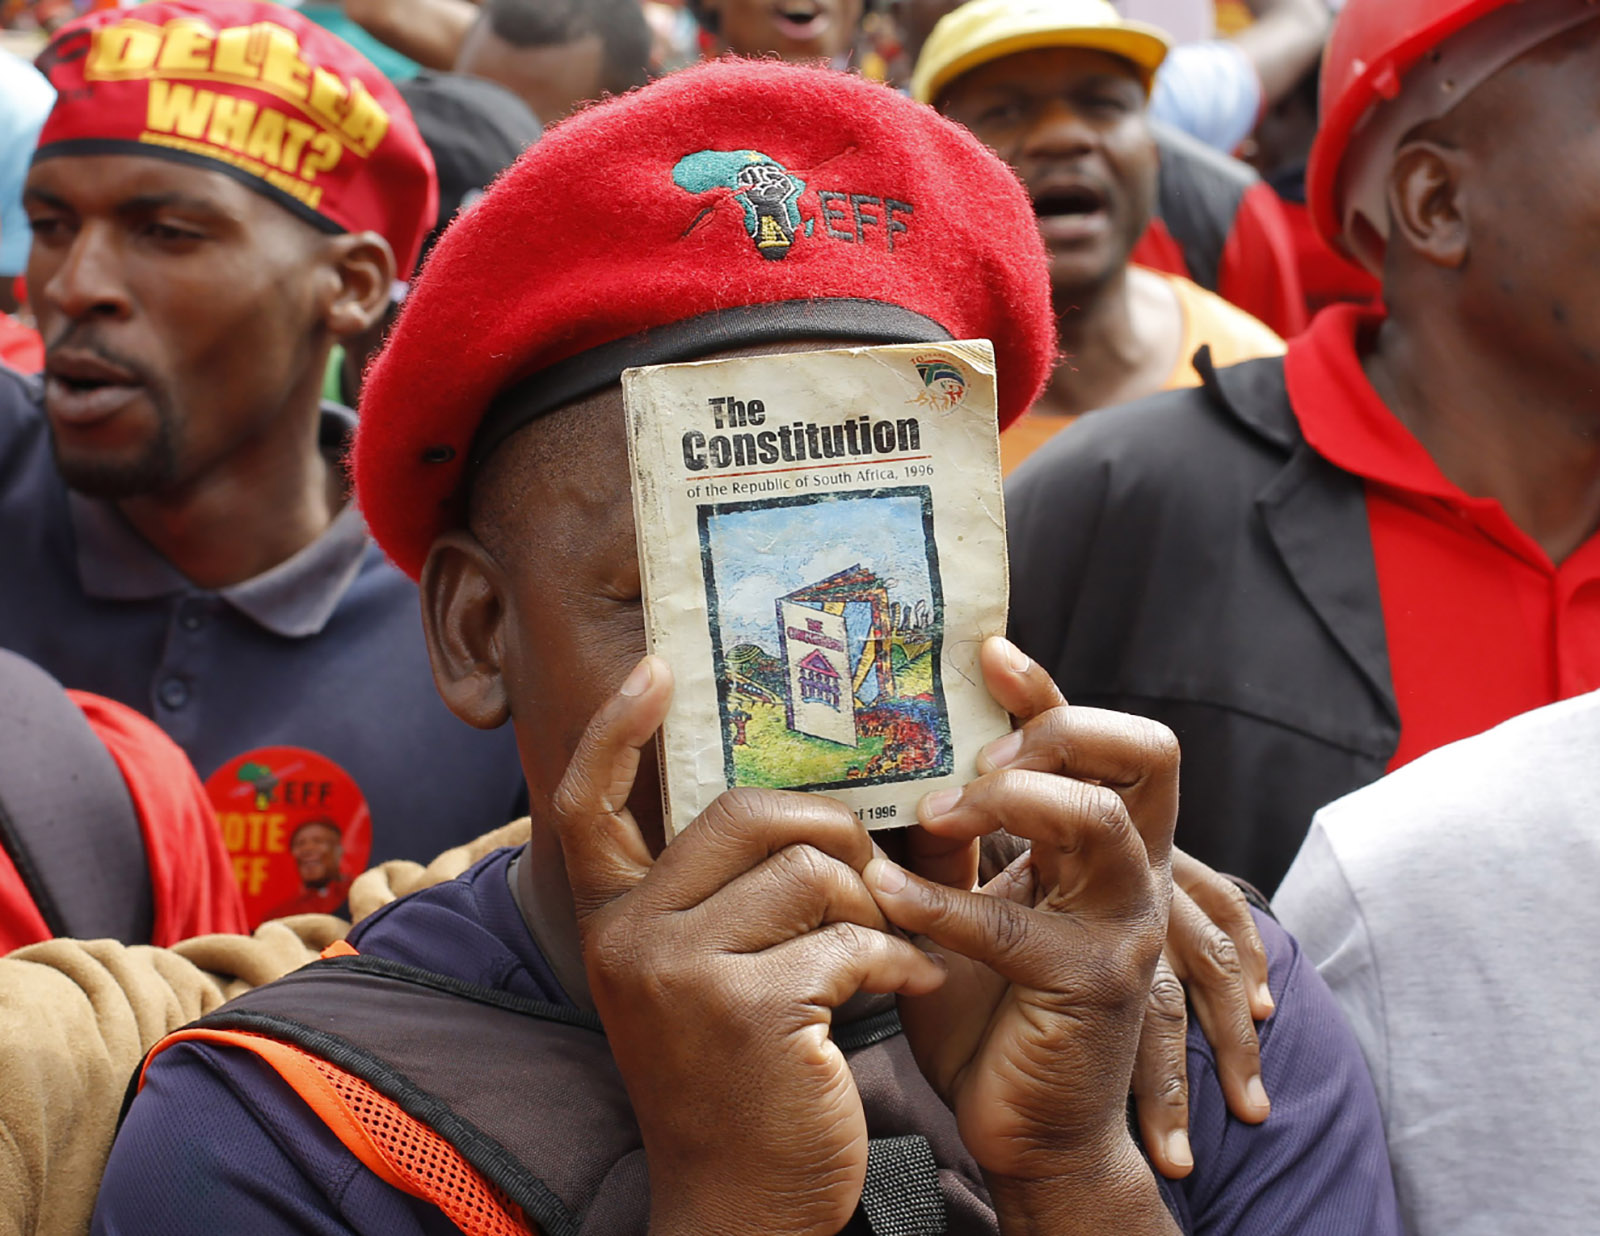 A protester holding a copy of South Africa's Constitution